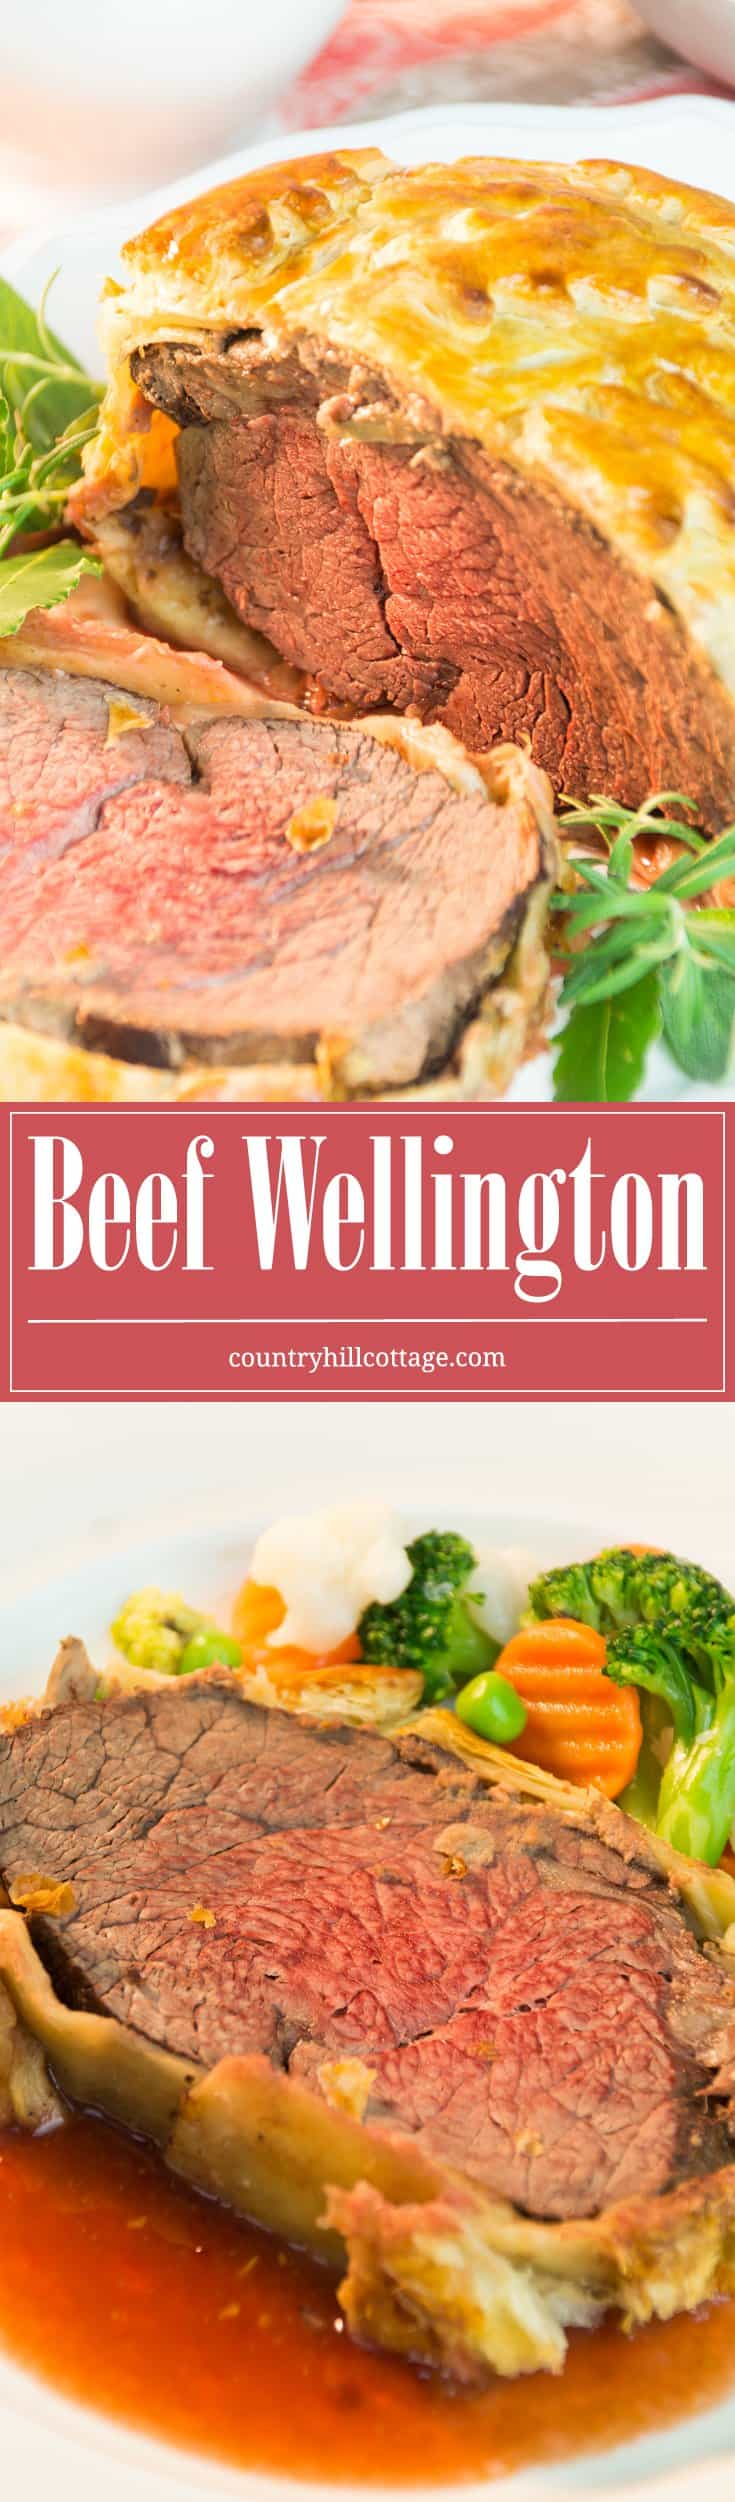 Beef Wellington is made with seared filet steak, layers of pâté and mushrooms, and baked in crispy puff pastry. This classic British dish is perfect for special occasions, and we love to serve it with Cumberland sauce. #recipe #steak #puffpastry   countryhillcottage.com